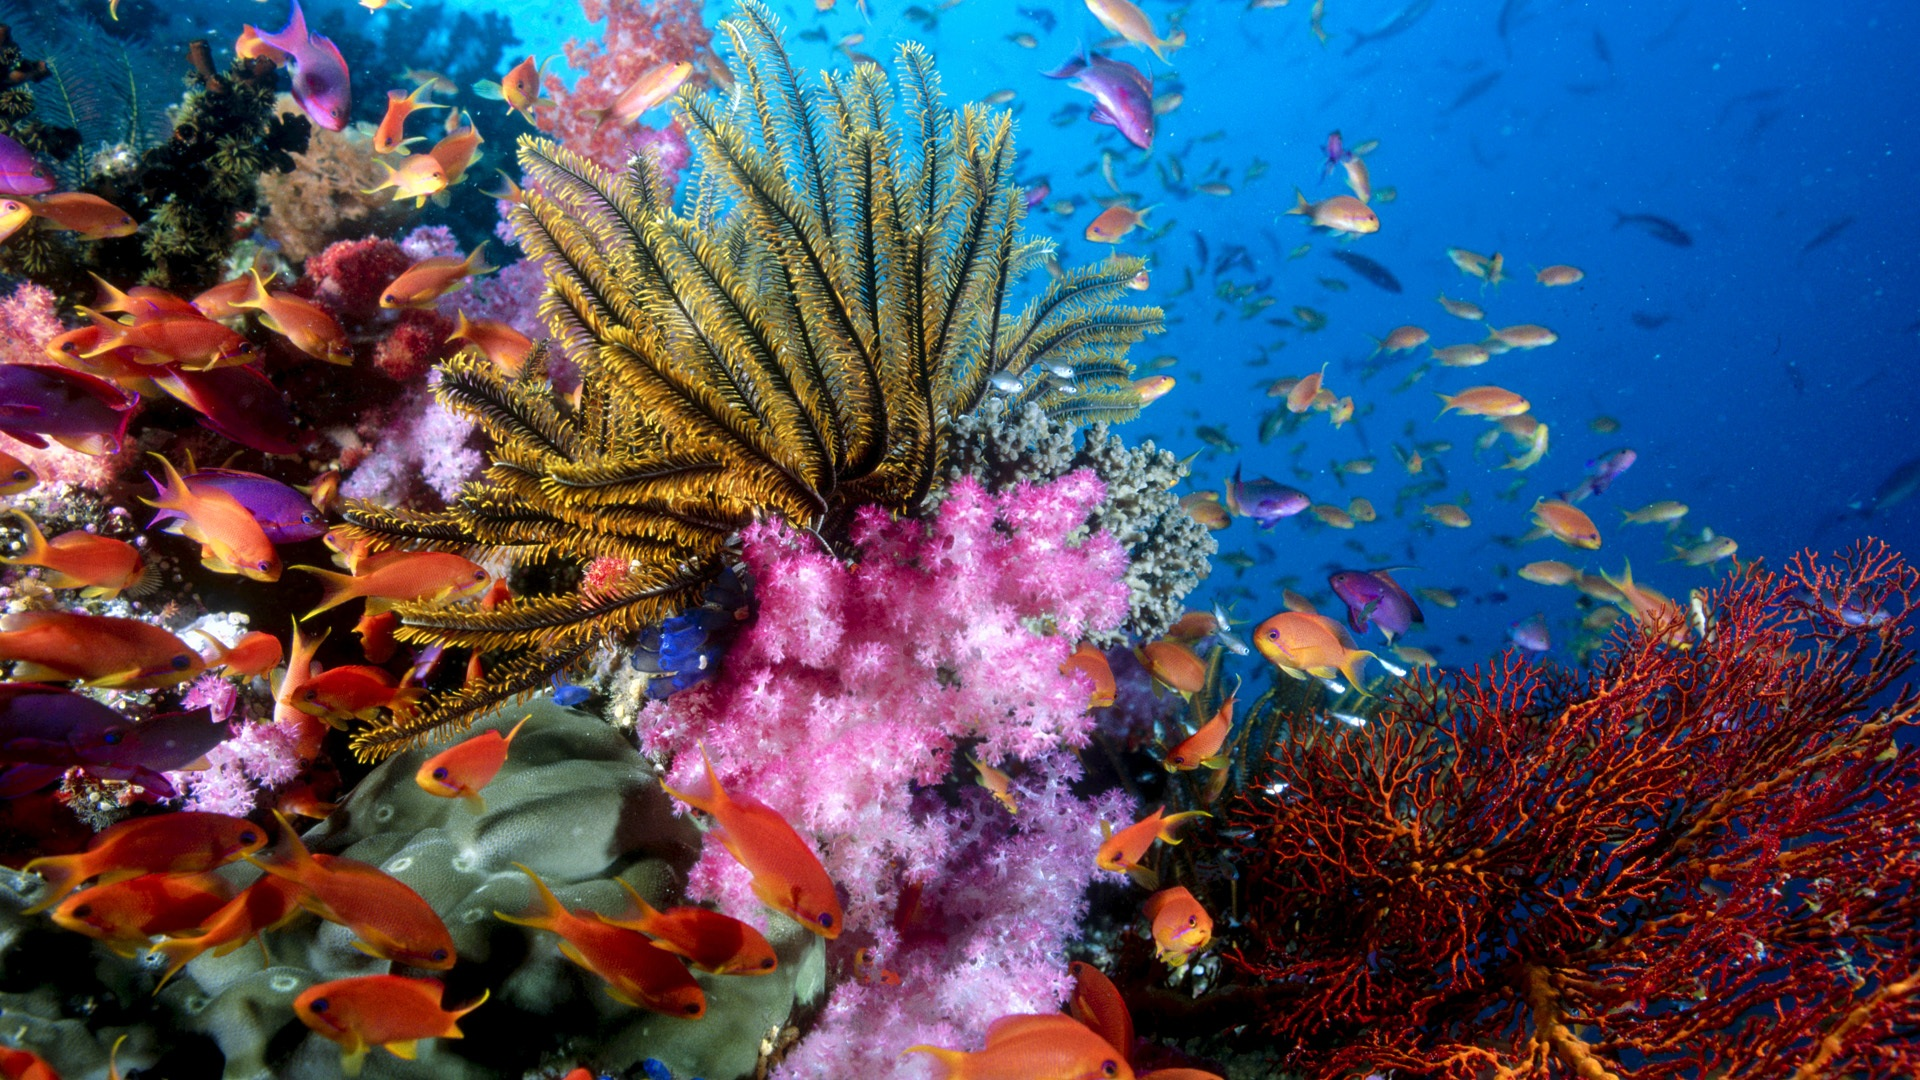 Colorful sea fish Wallpapers Backgrounds HD Desktop Wallpapers 1920x1080